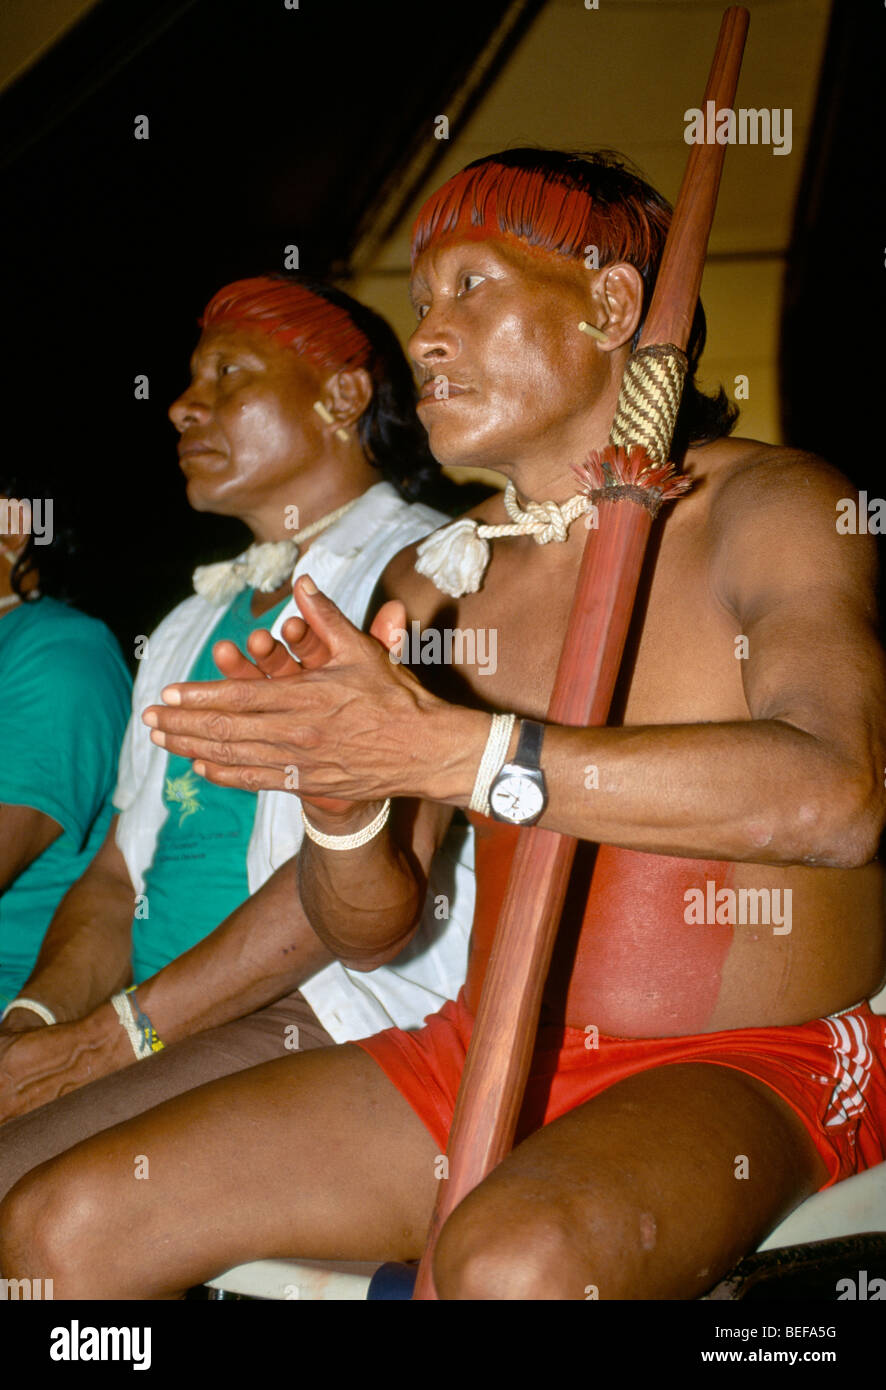 Kaiapo Indigenous People, Tent 9 meeting of indigenous peoples, At Earth Summit 1992, Rio, Brazil, South America. - Stock Image